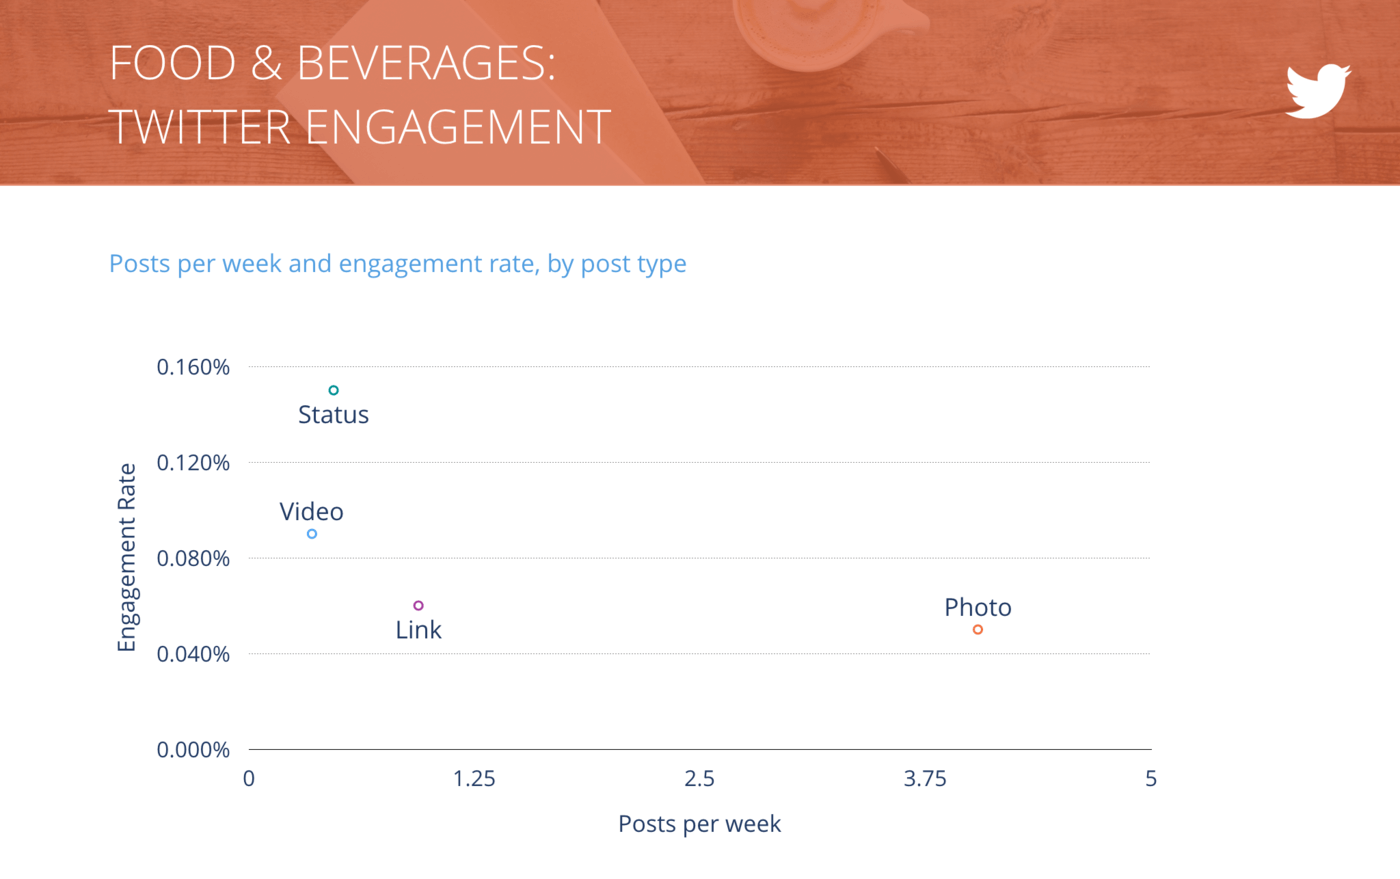 slide of Tweets per Week vs. Engagement Rate per Tweet, Food & Beverages